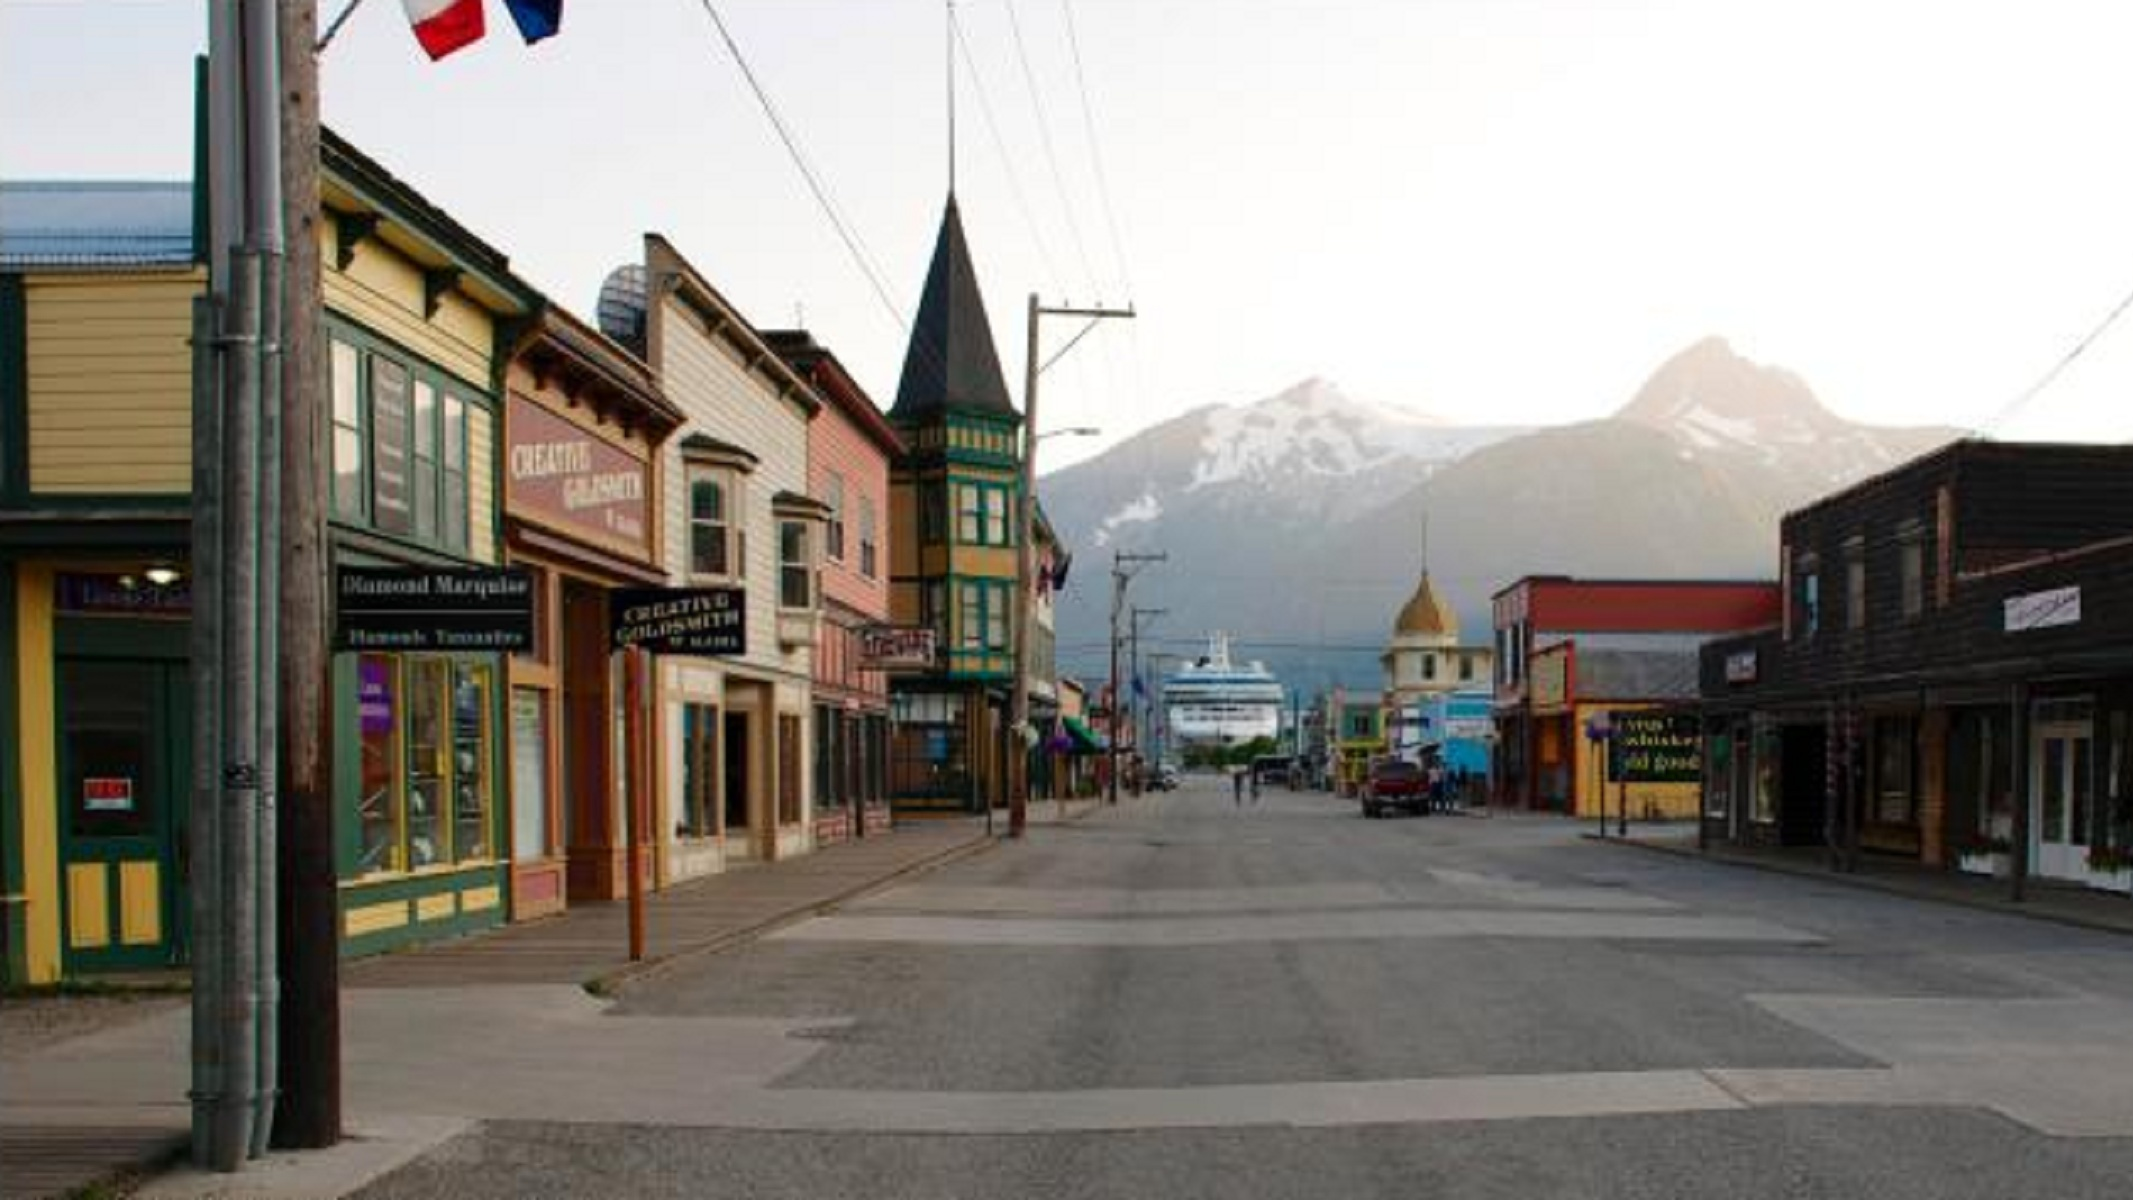 Street view of downtown Skagway, Alaska